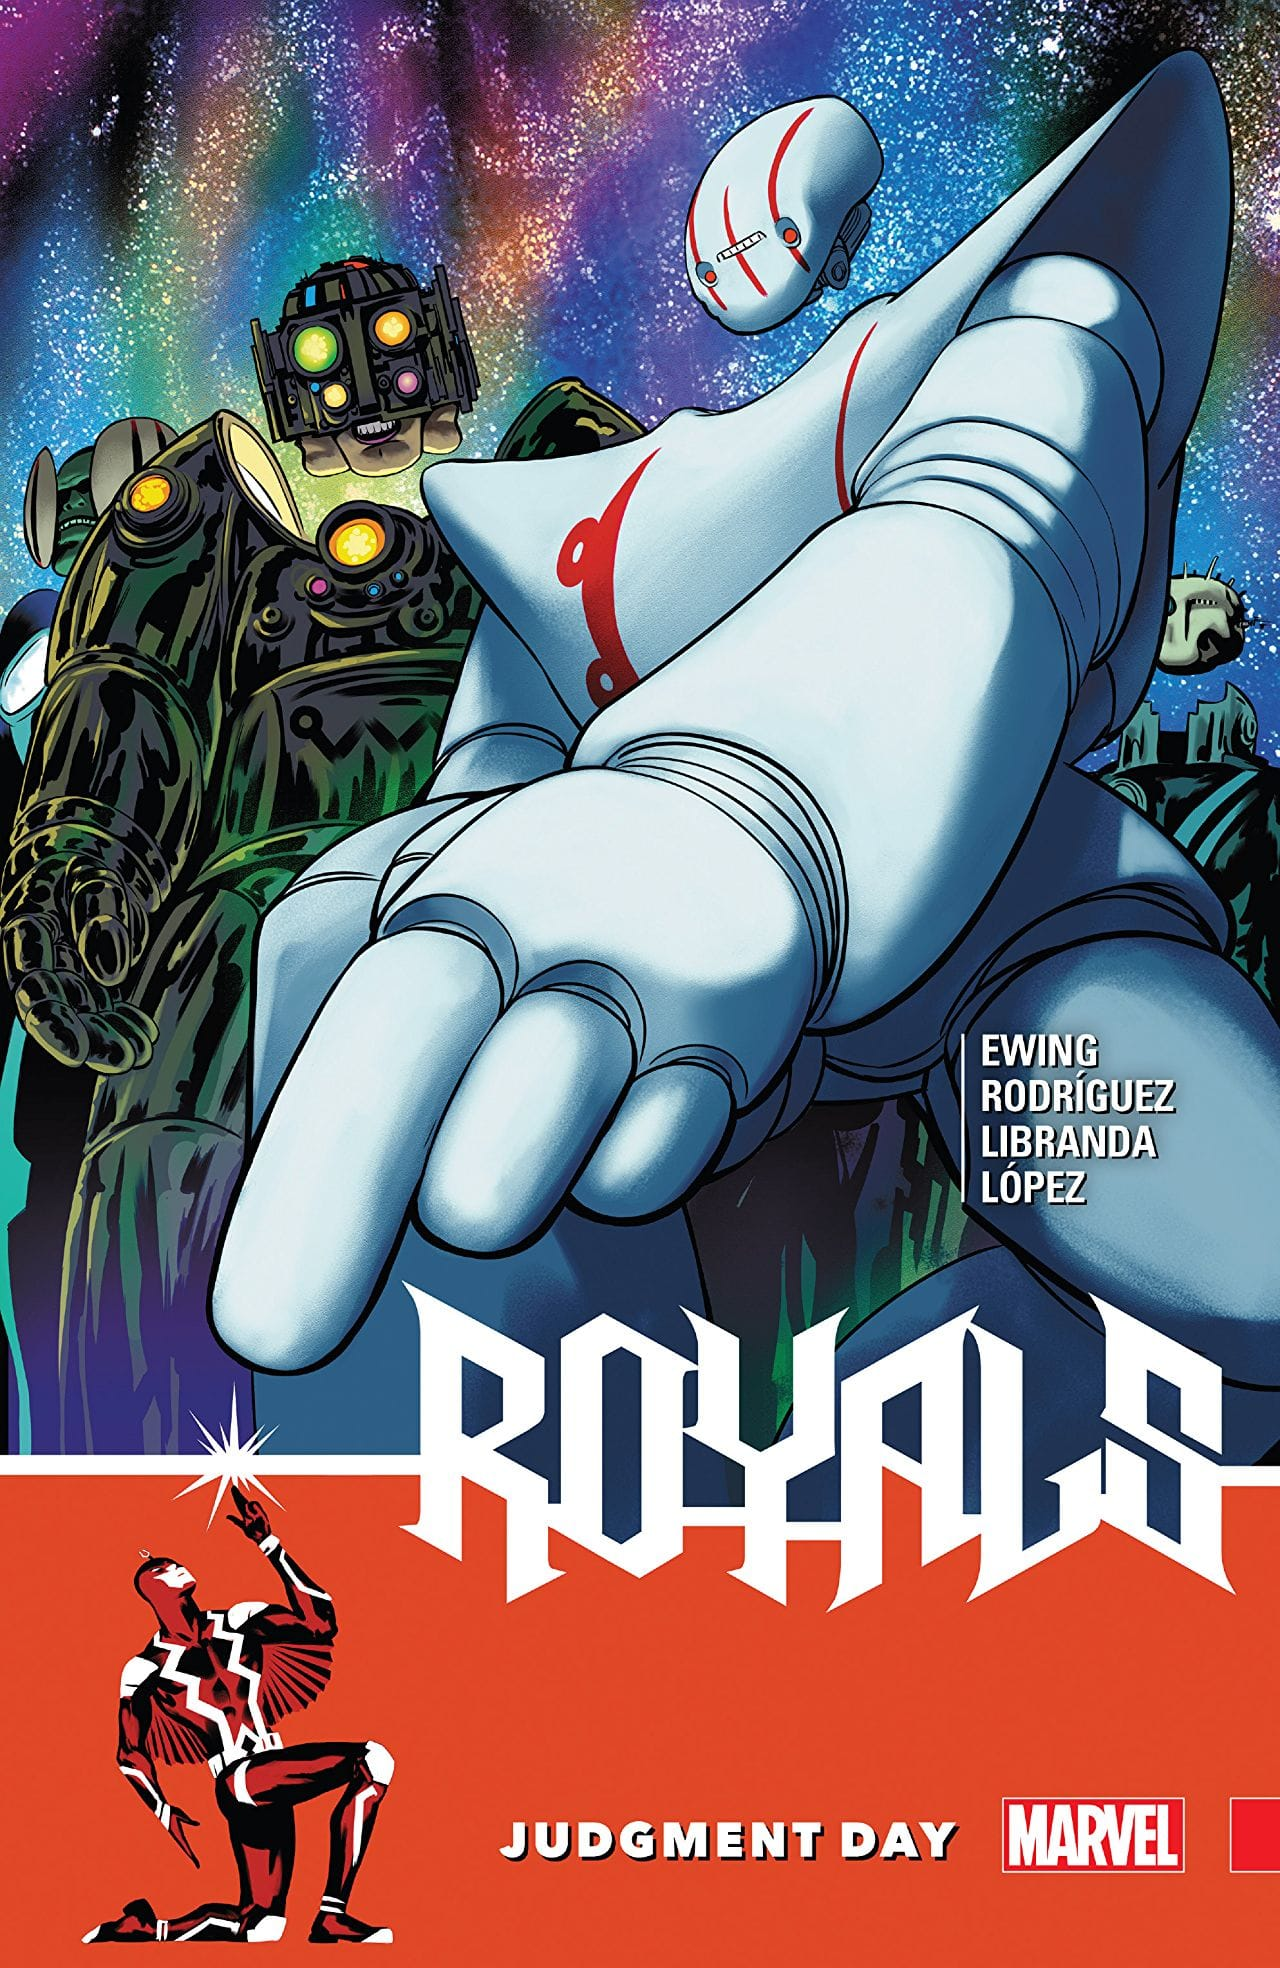 'Royals Vol. 2: Judgment Day' is a solid ending to a unique Inhuman saga